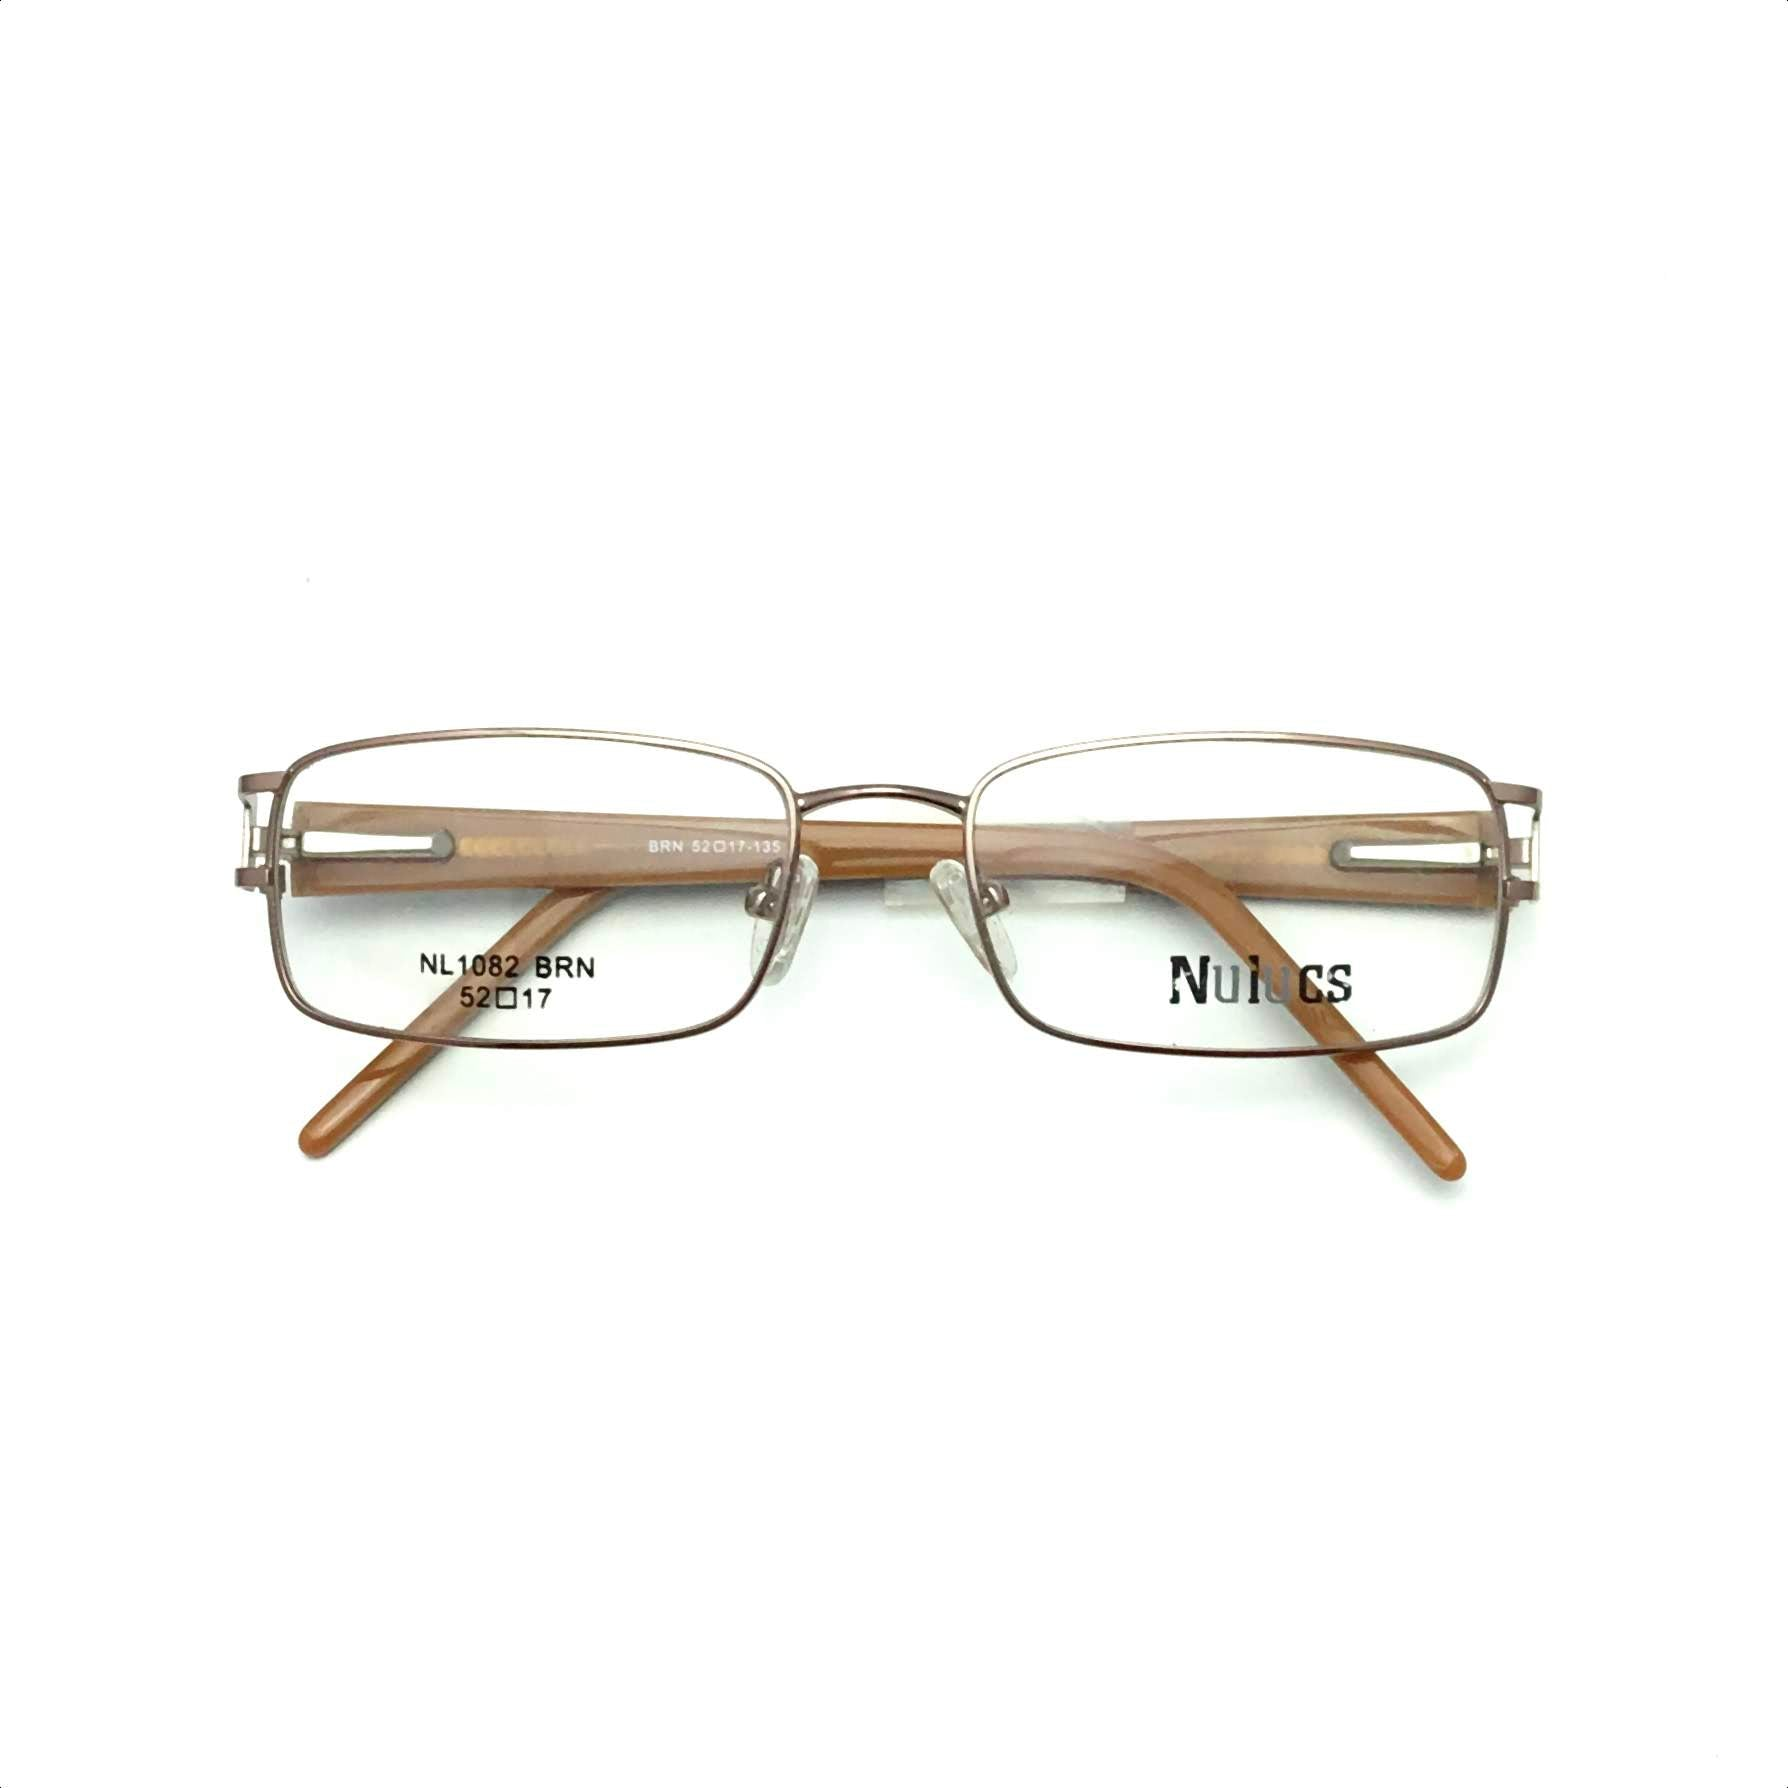 Nulucs Glasses $19 Brown A19